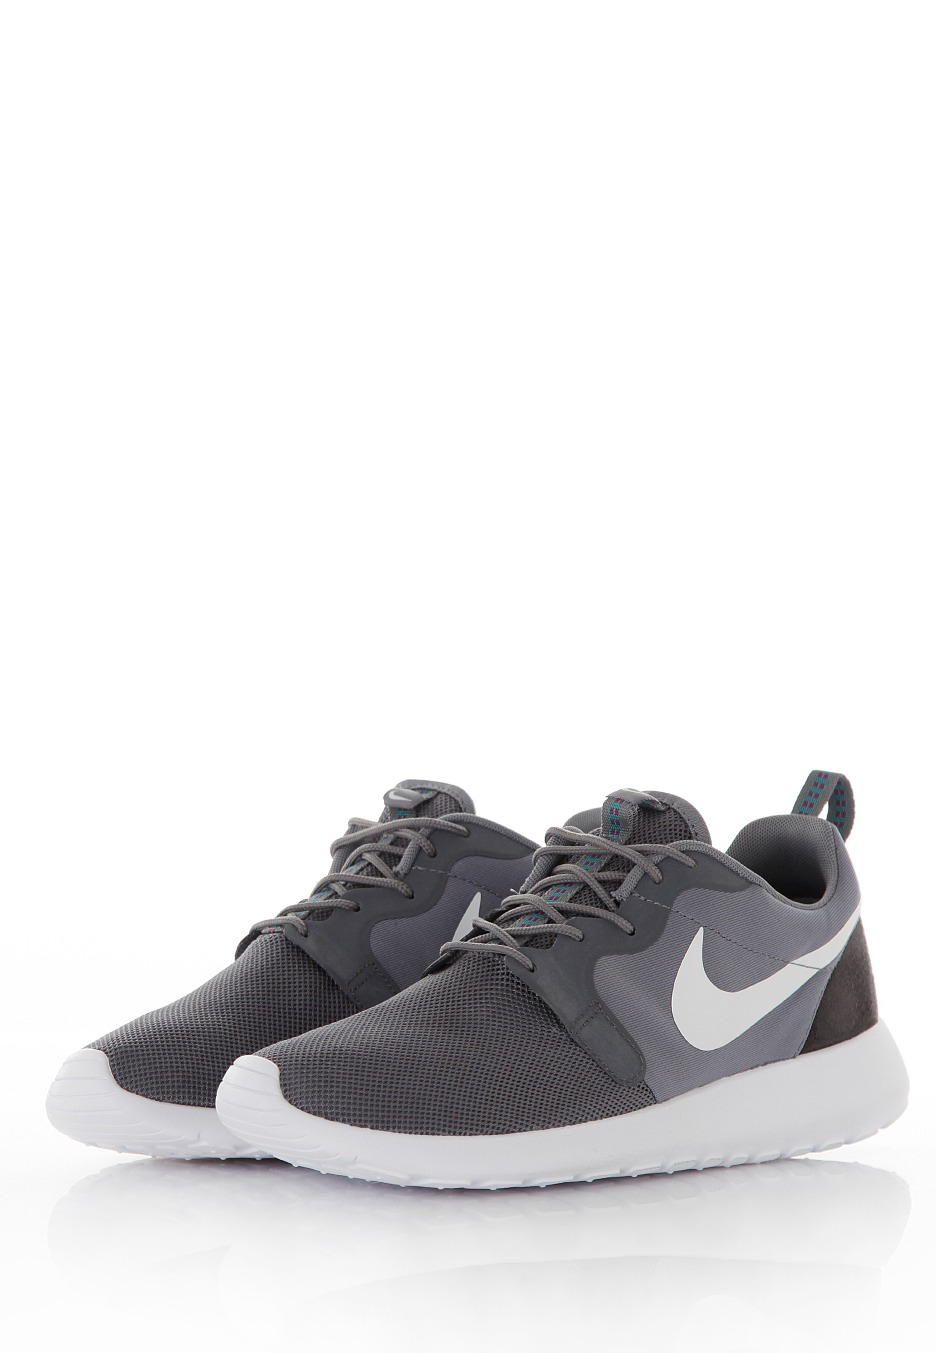 Nike Roshe Run Hyperfuse Clear GreyWhiteAnthraciteTurbo Green Shoes